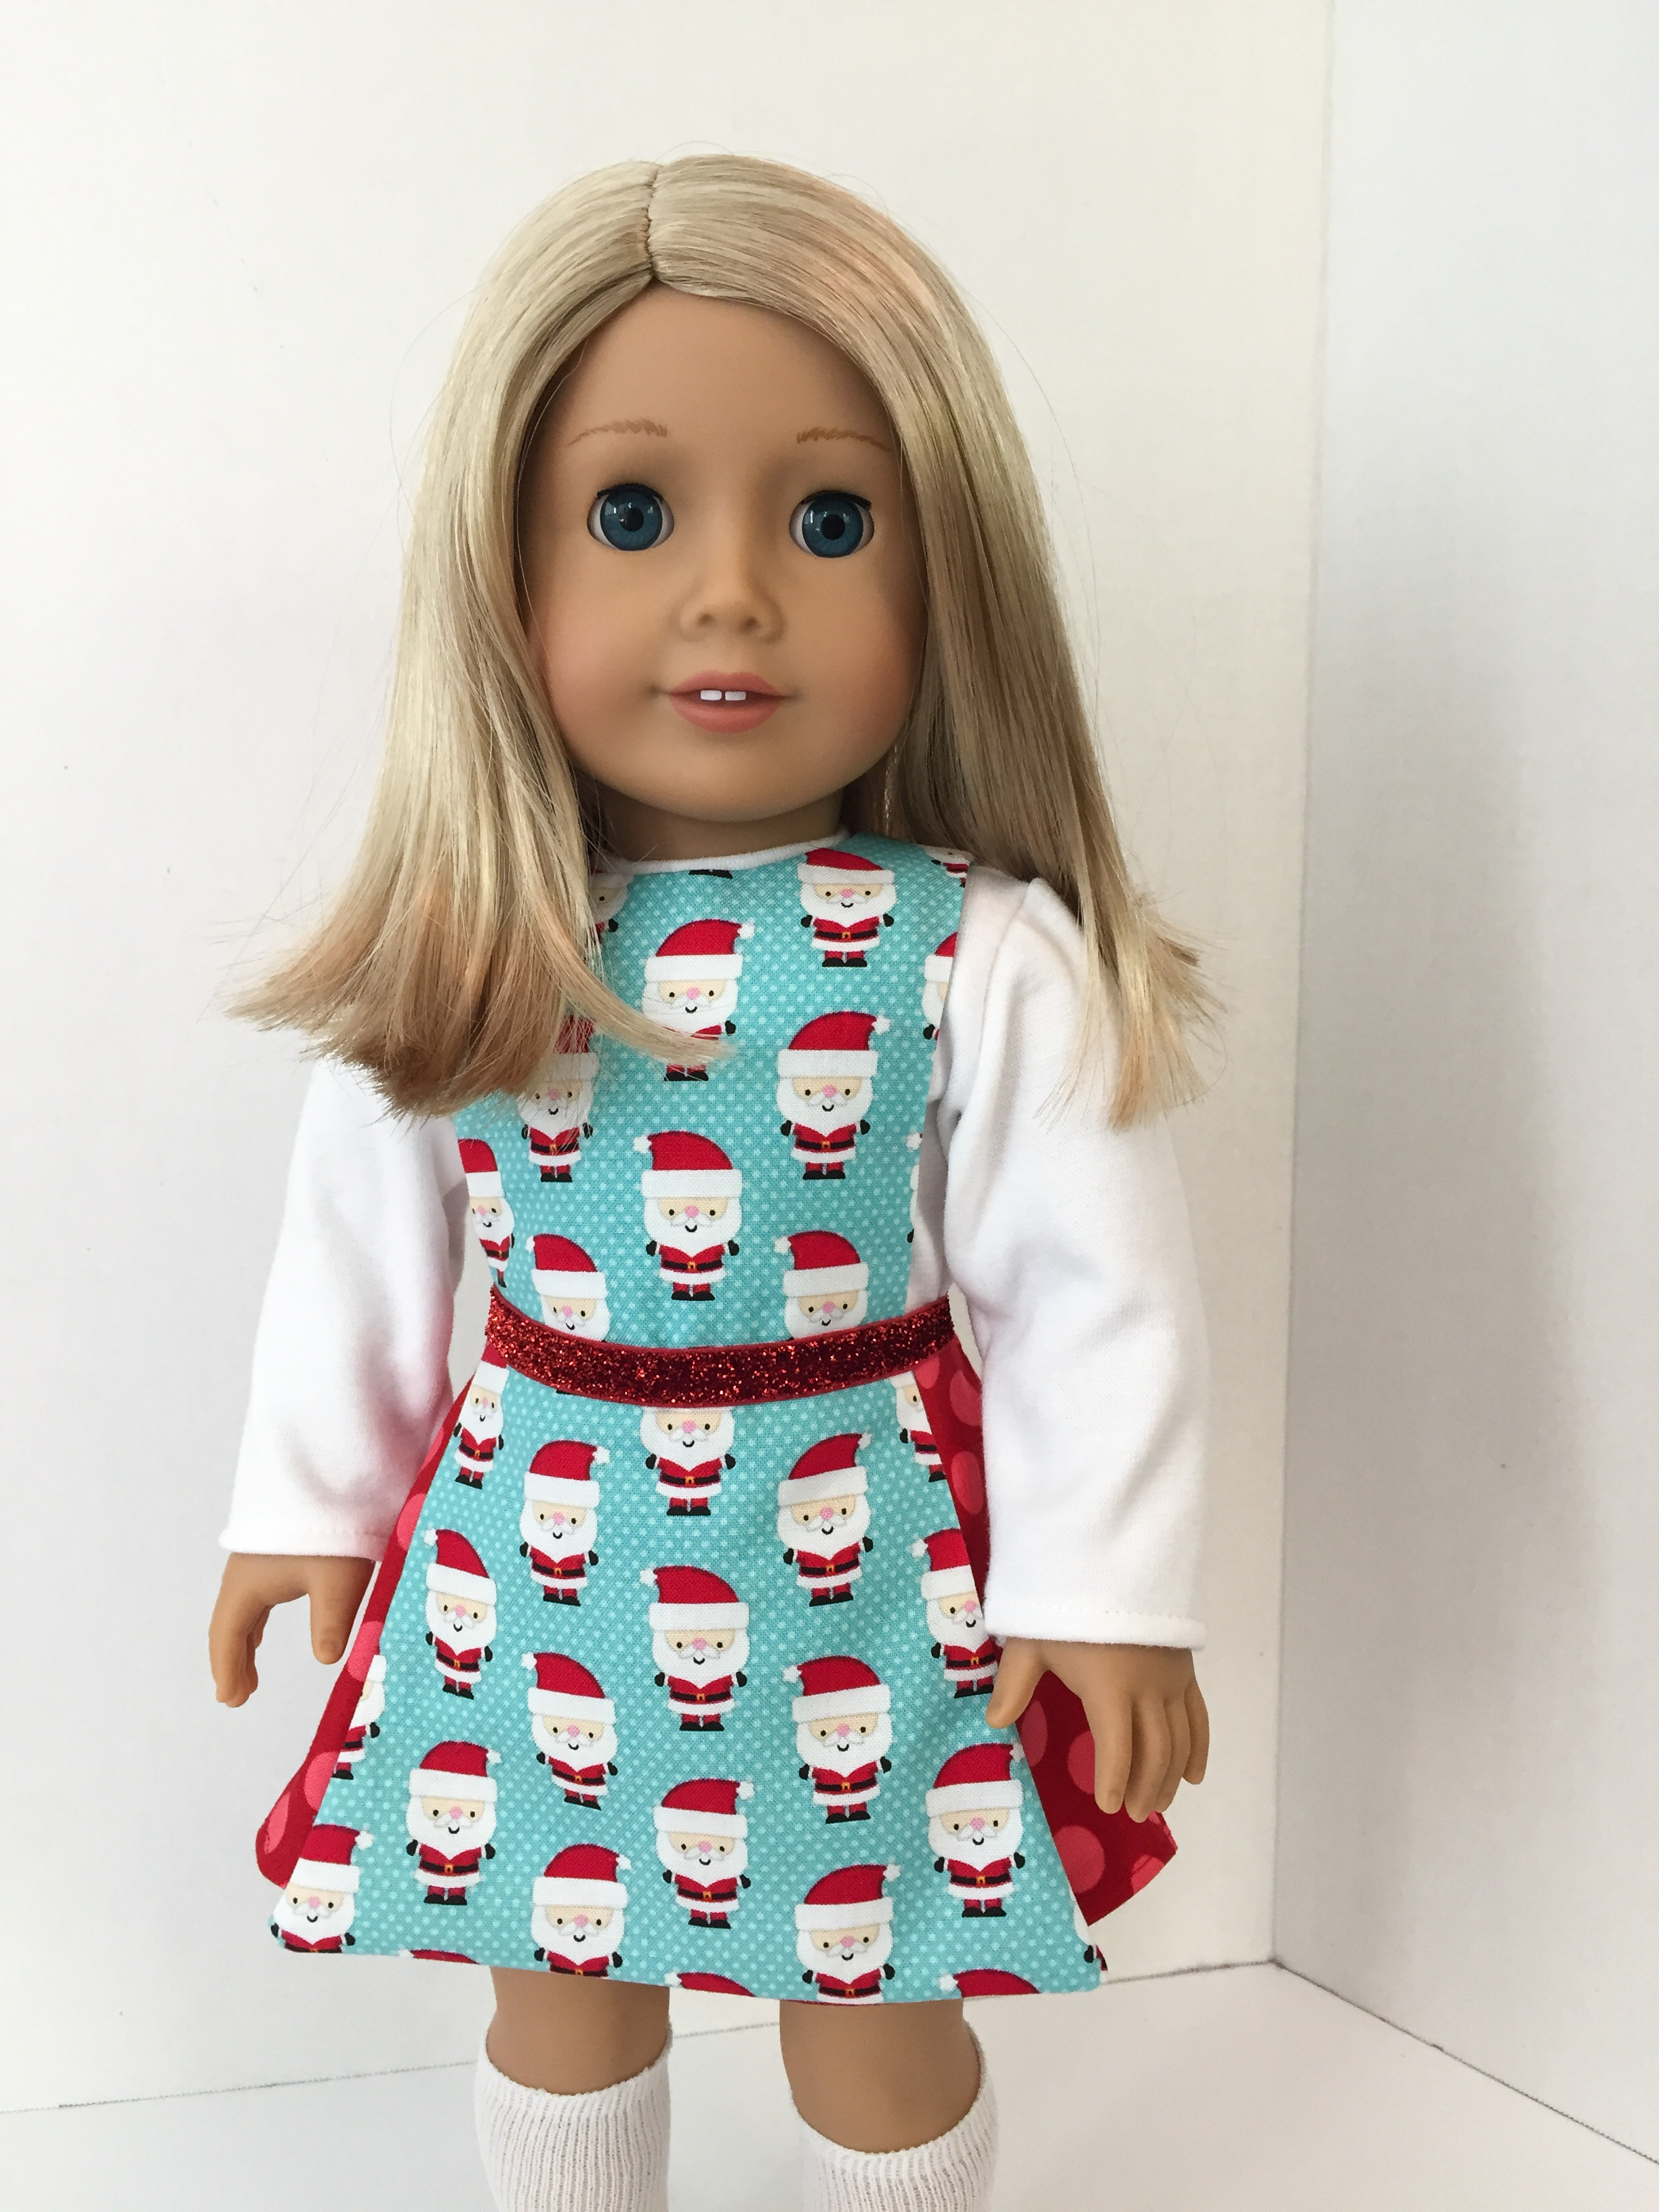 Easy sewing pattern to make 18 inch doll clothes. Print at home PDF patterns by oh sew kat for dolls. #ohsewkat #dollclothes #sewingpattern #jumpingjack #18inch